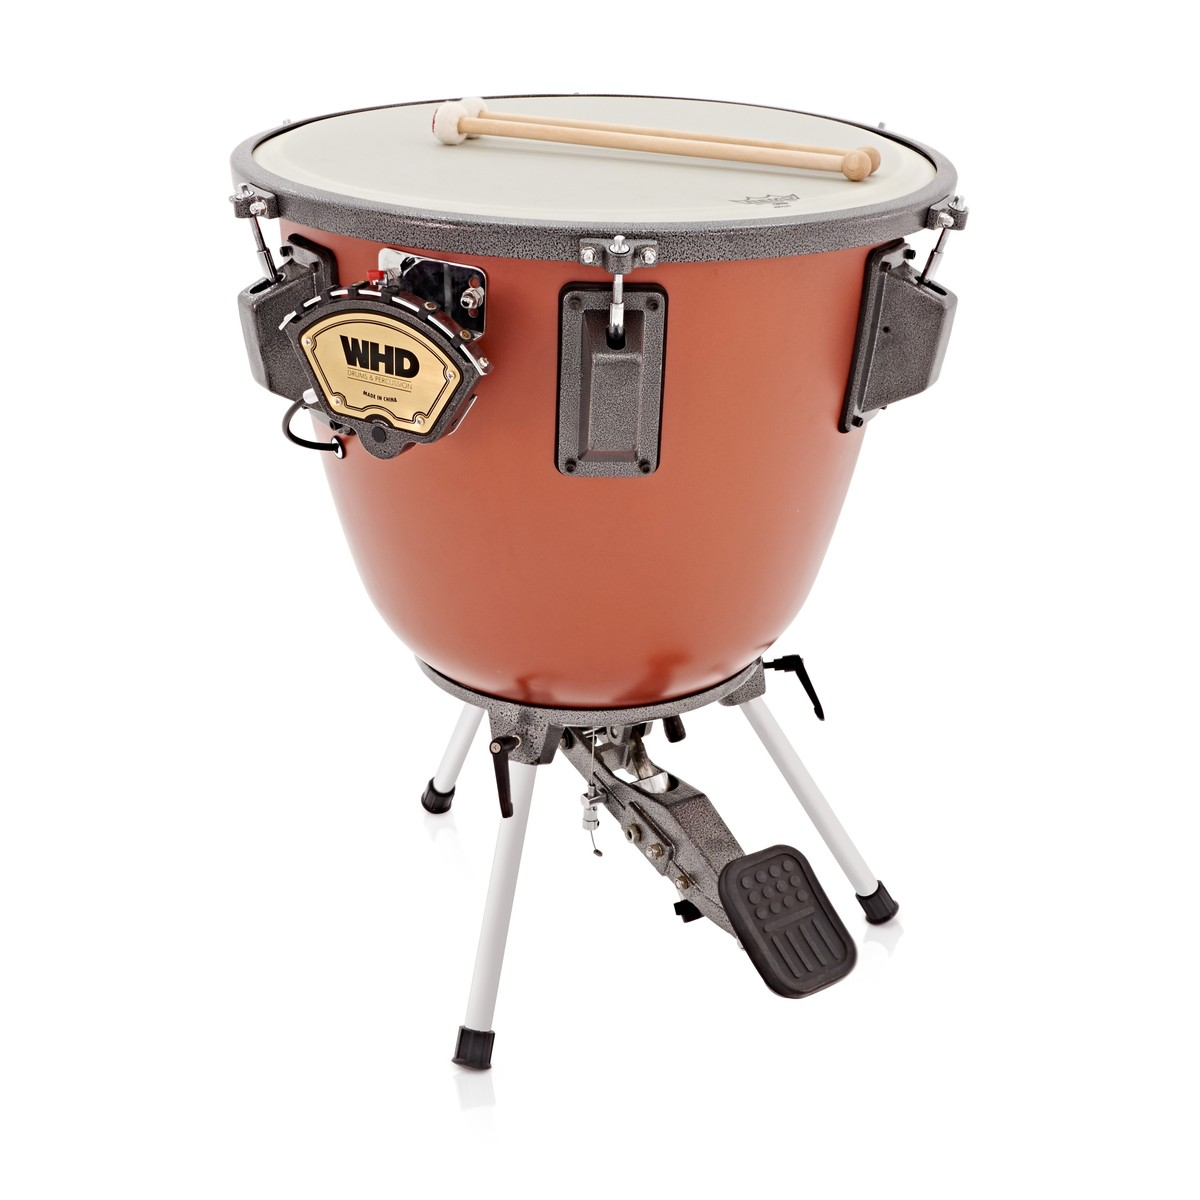 whd 23 inch professional orchestral timpani b stock at gear4music